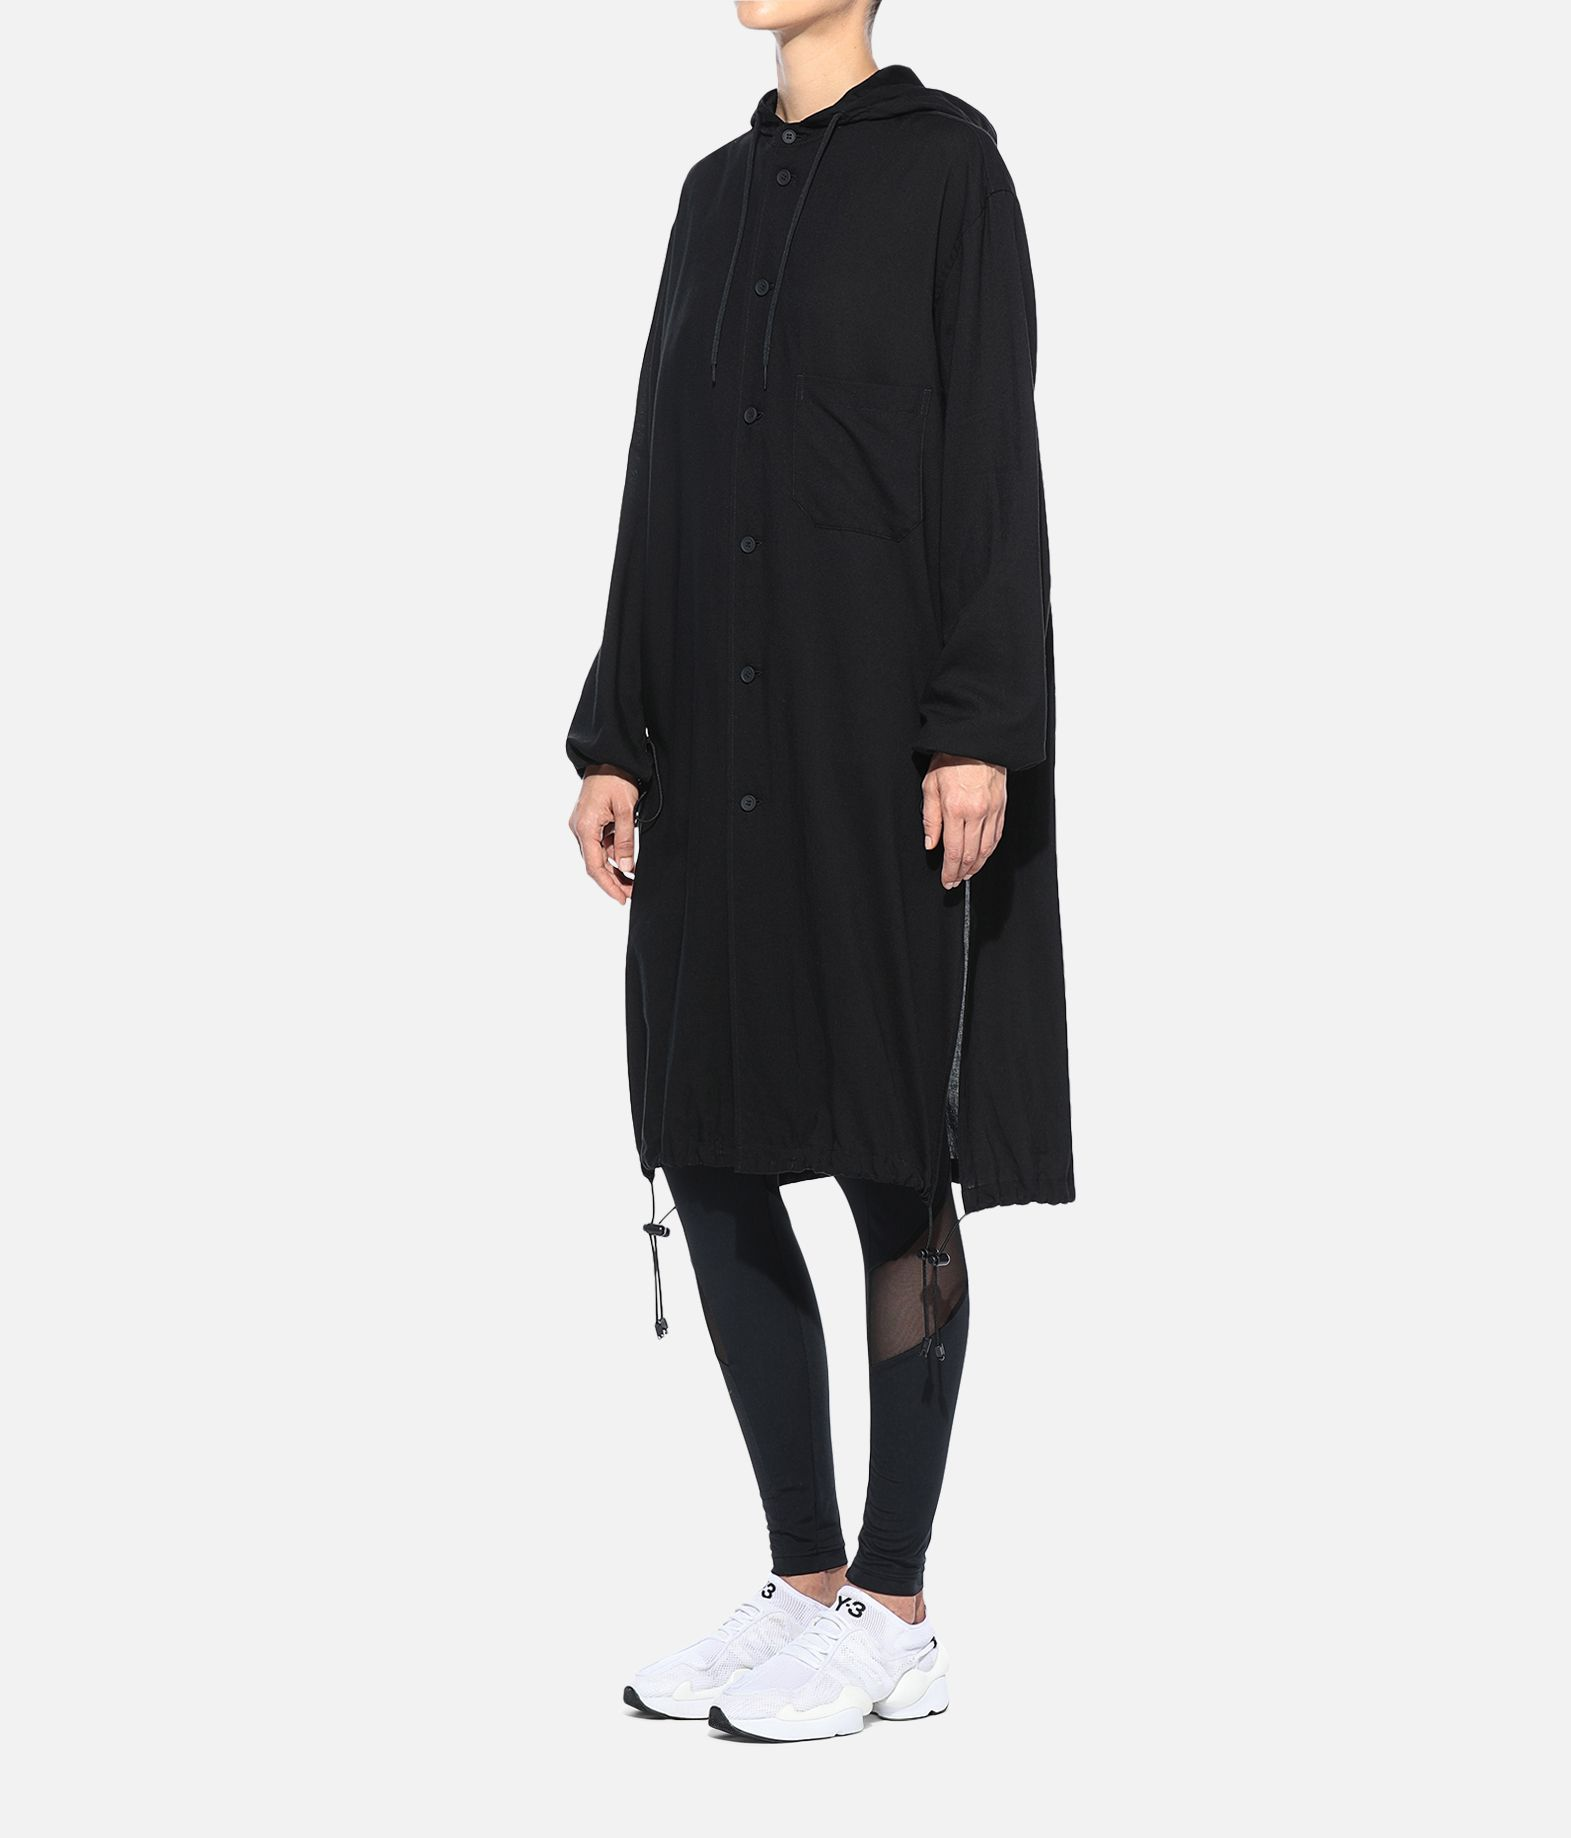 Y-3 Y-3 Hooded Long Shirt Long sleeve shirt Woman e